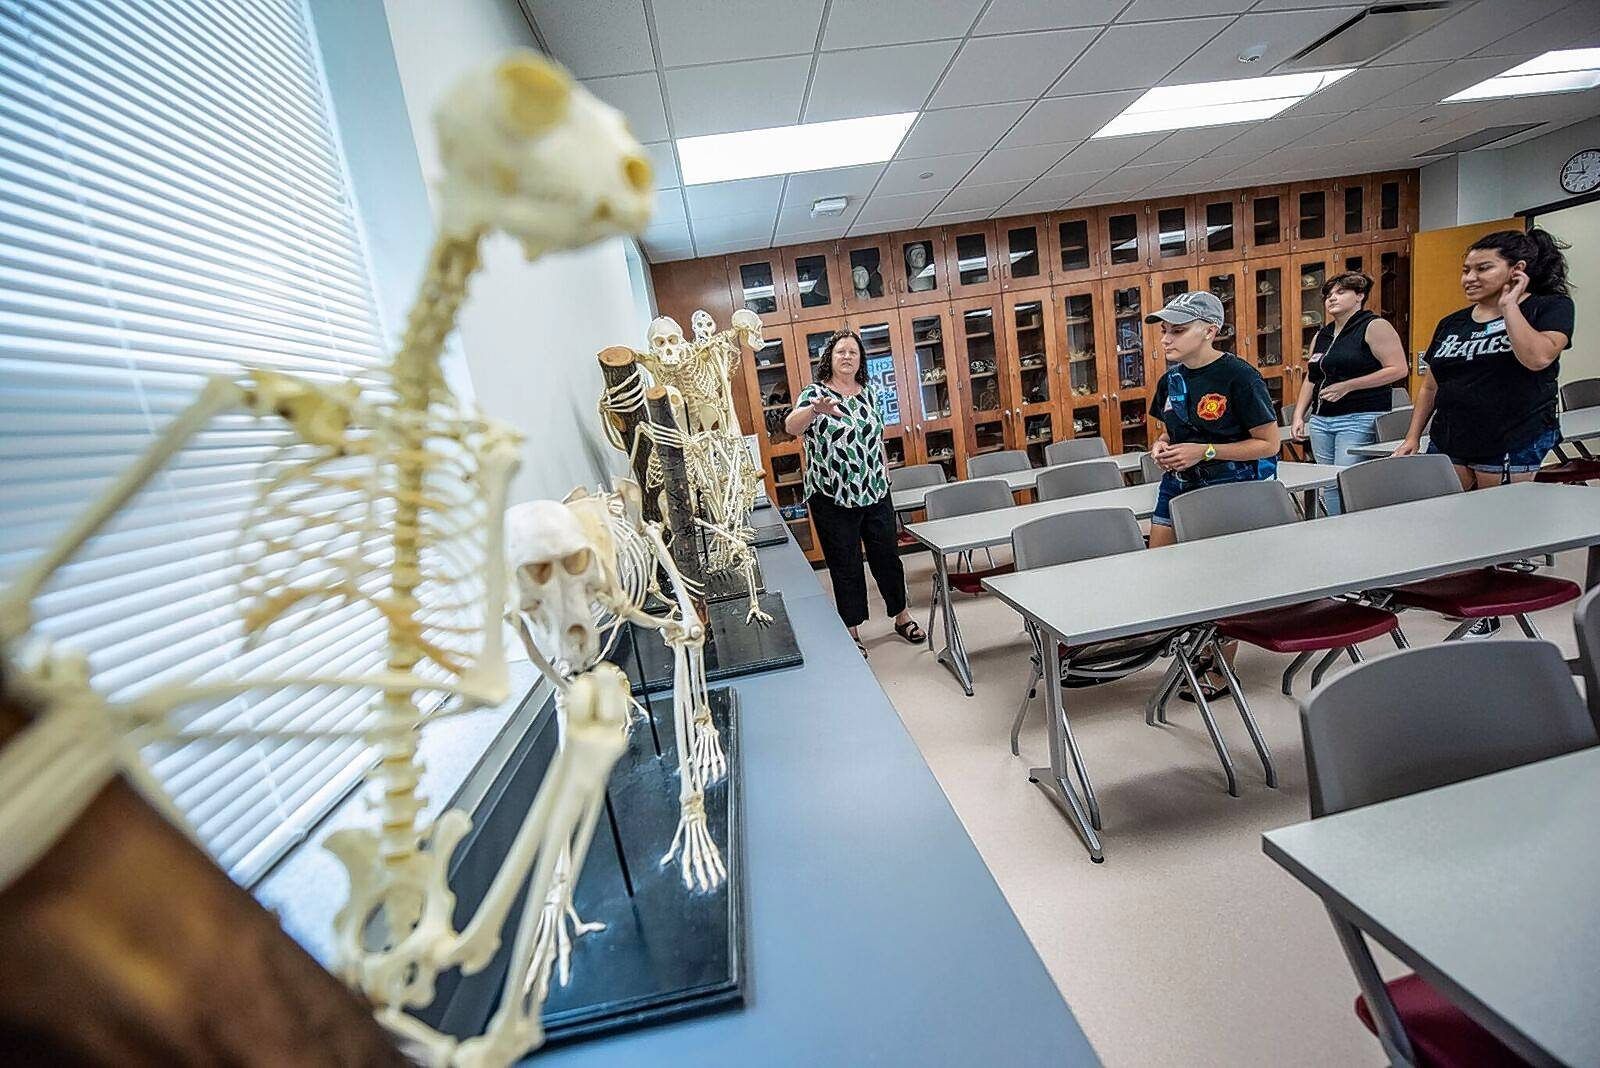 Northern Illinois University students check out the renovated Stevens Building, home to the School of Theatre and Dance and the anthropology department.